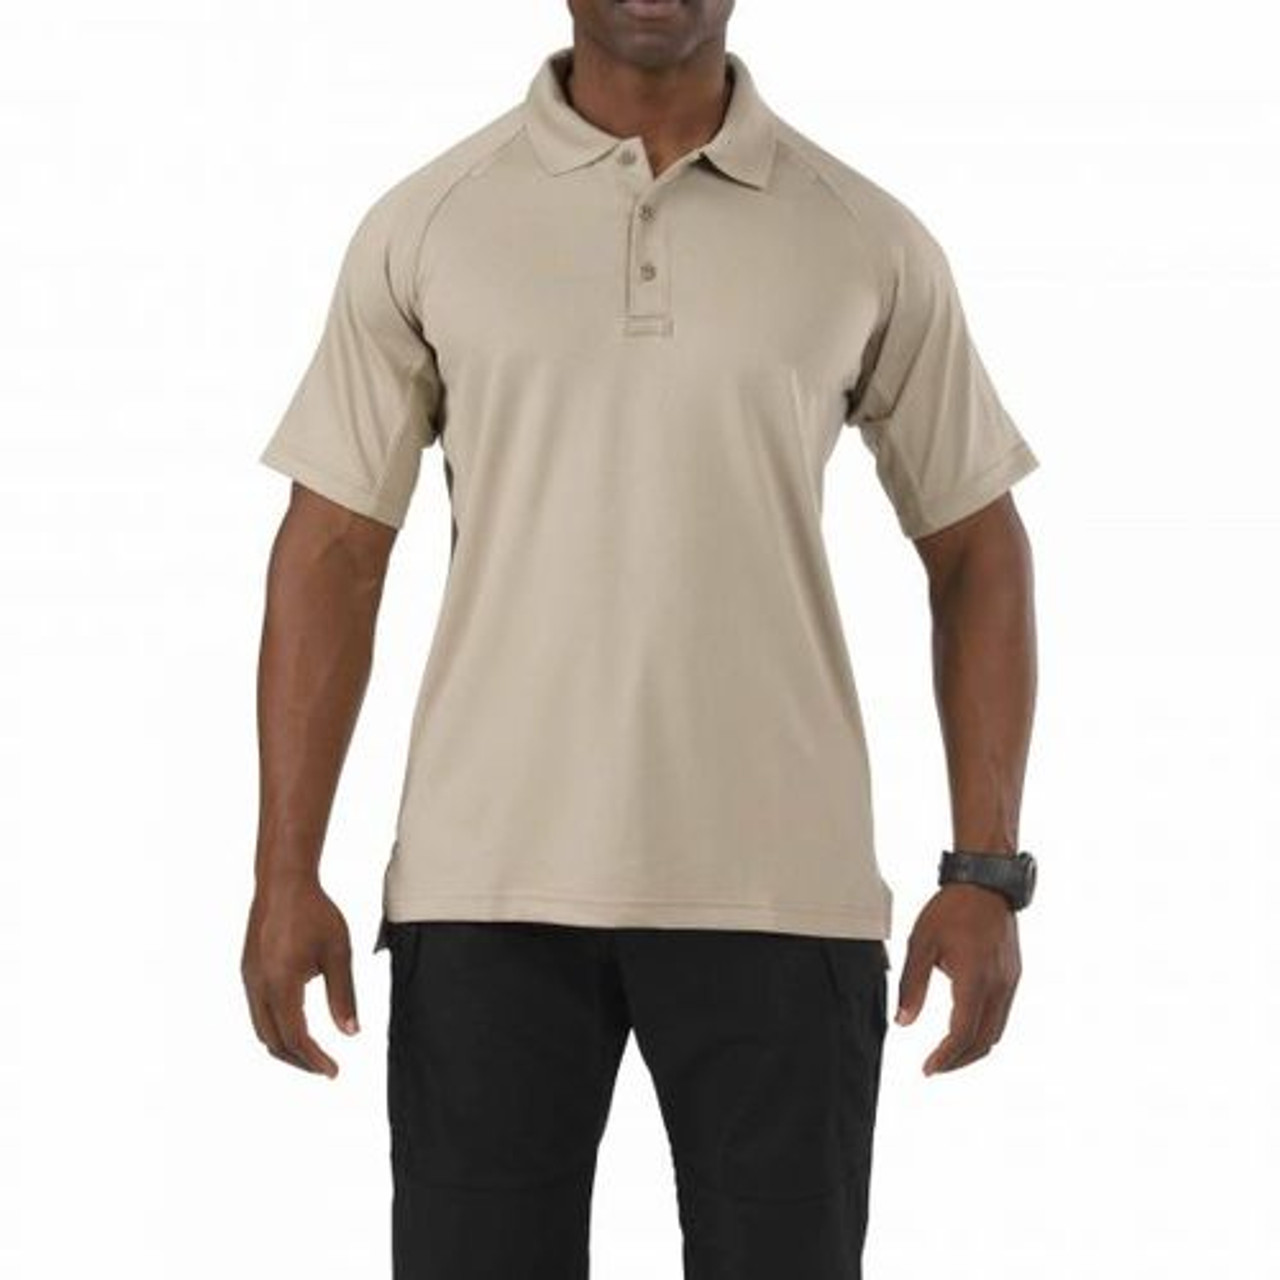 5.11 Tactical 71049 Men's Performance, Short Sleeve Casual or Uniform Polo Shirt